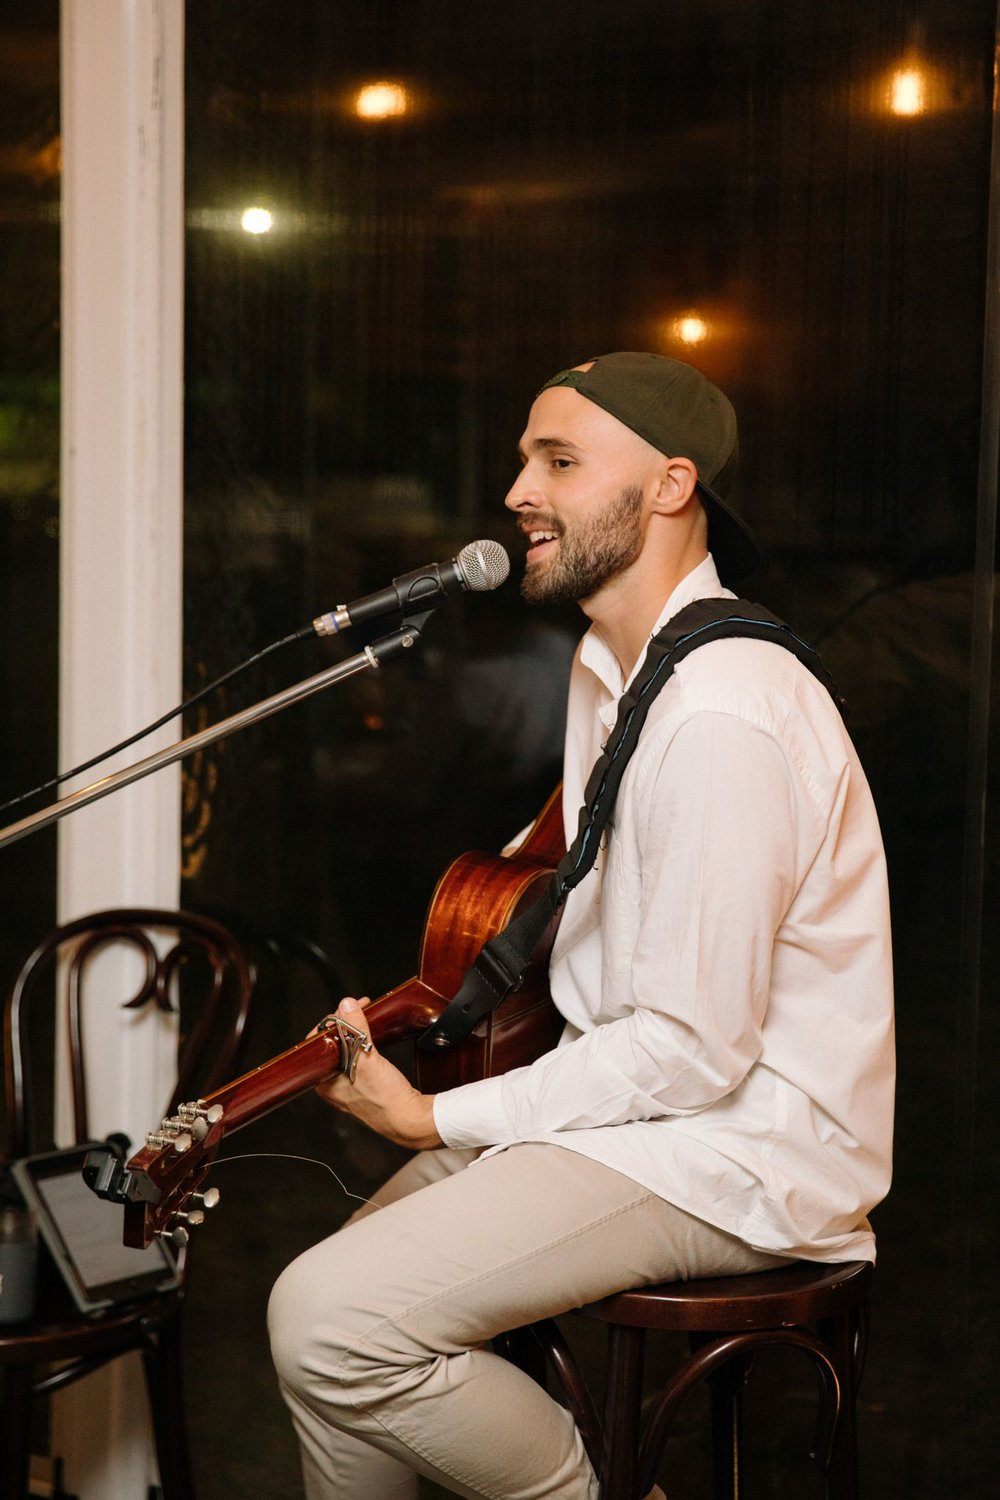 mark crotti high end dining acoustic live music fancy resturants sydney.jpg